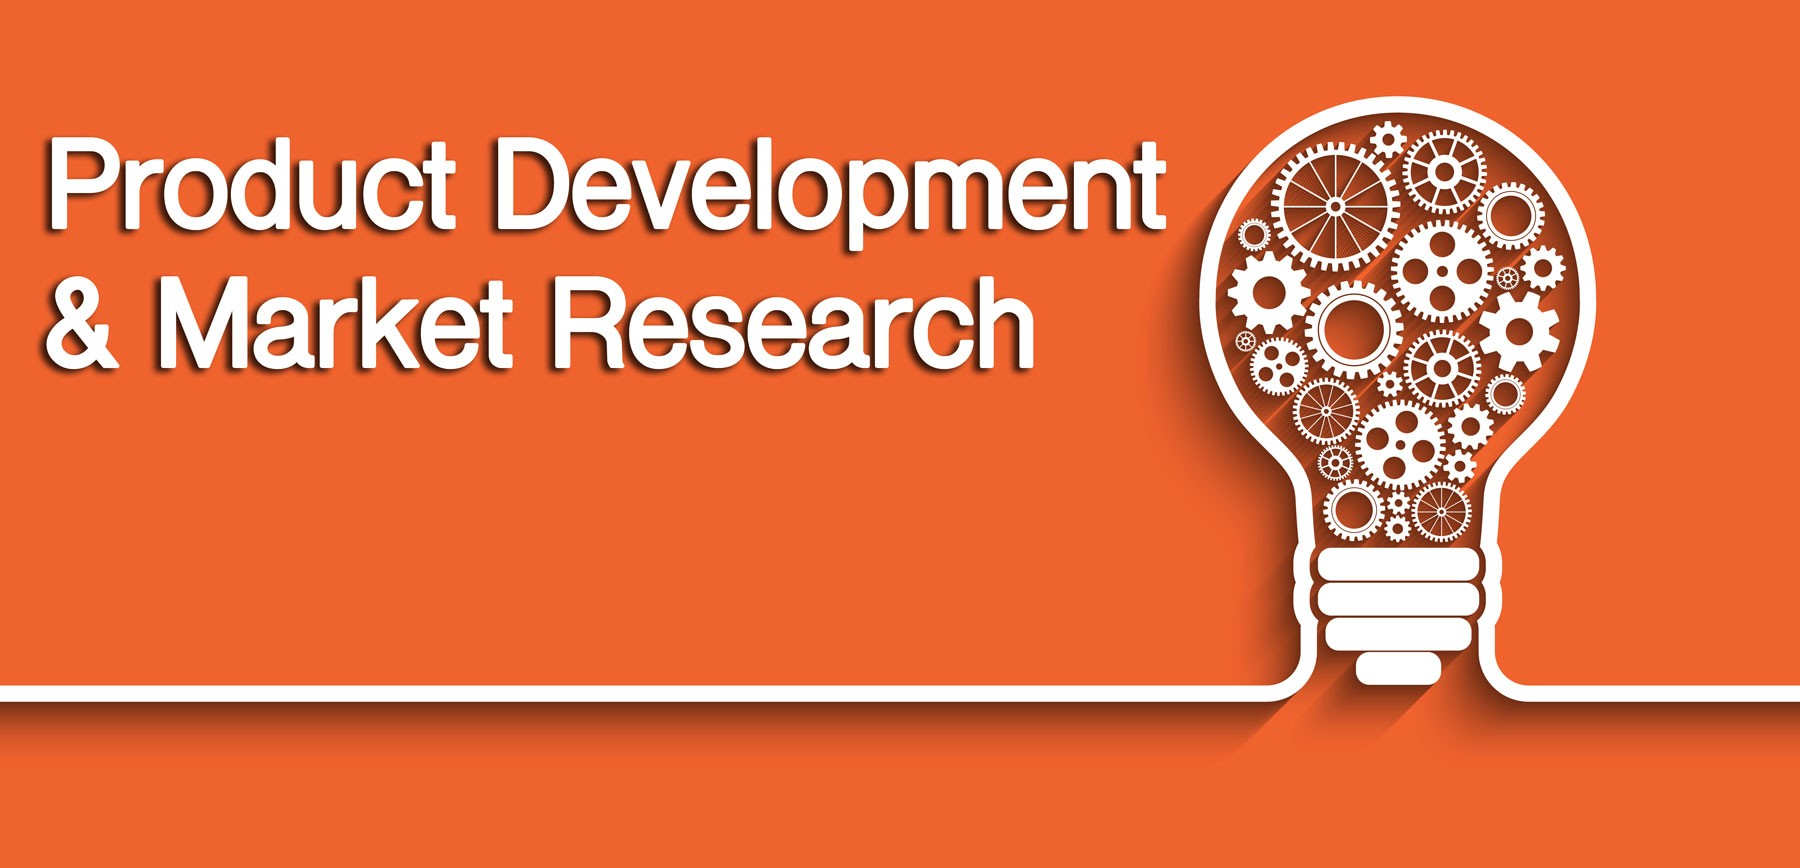 Engineering Market Research Our Work Product Dev Mkt Research E Engineering Market Research